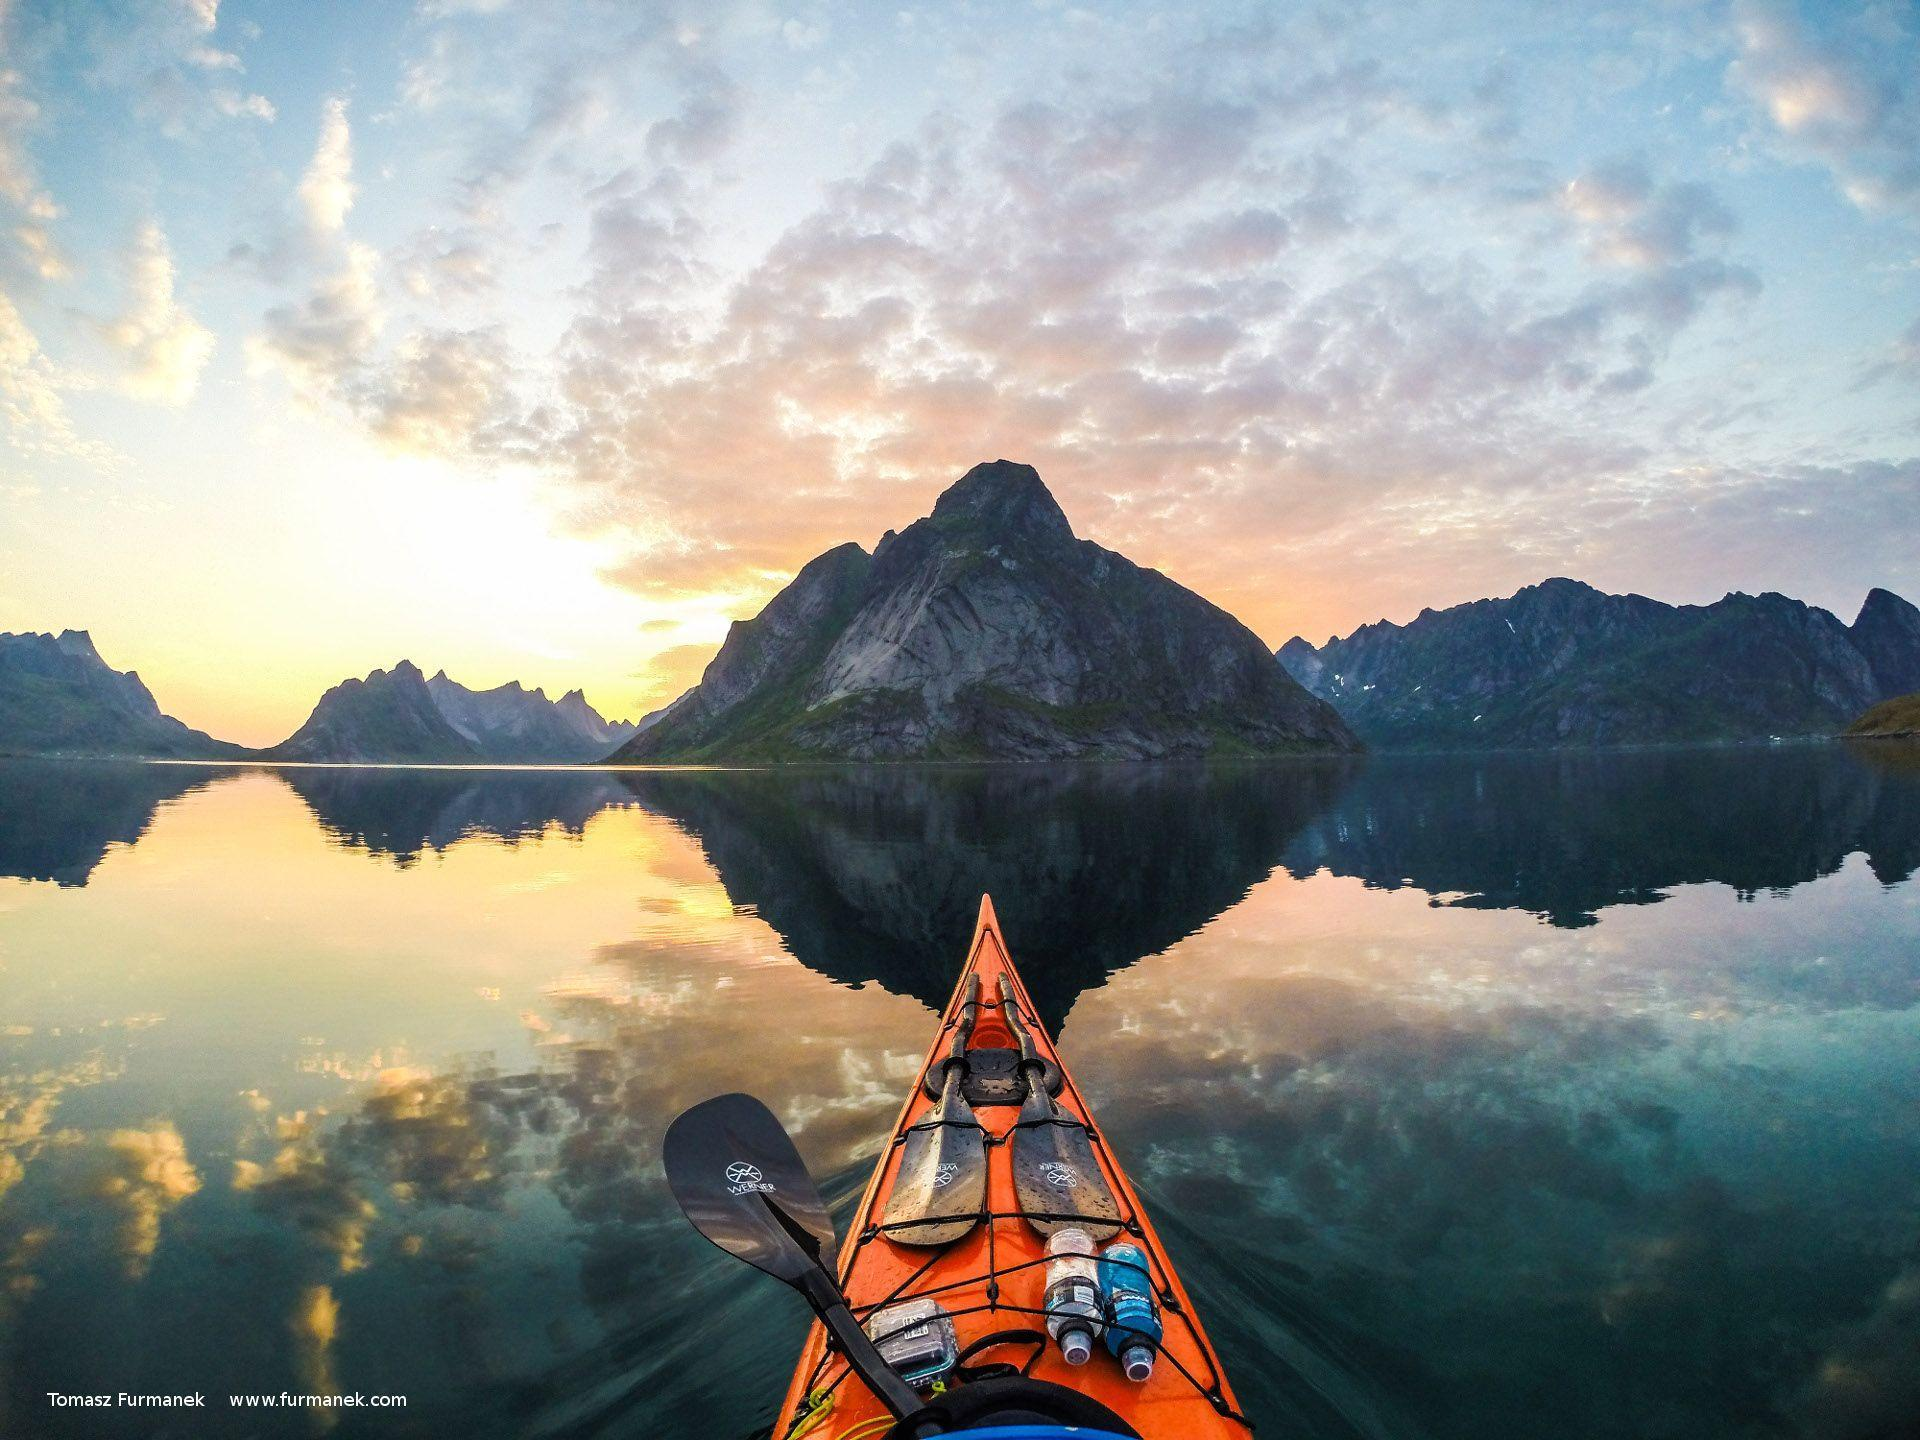 44 Widescreen Full HD Wallpapers Of Kayak For Windows And Mac Systems